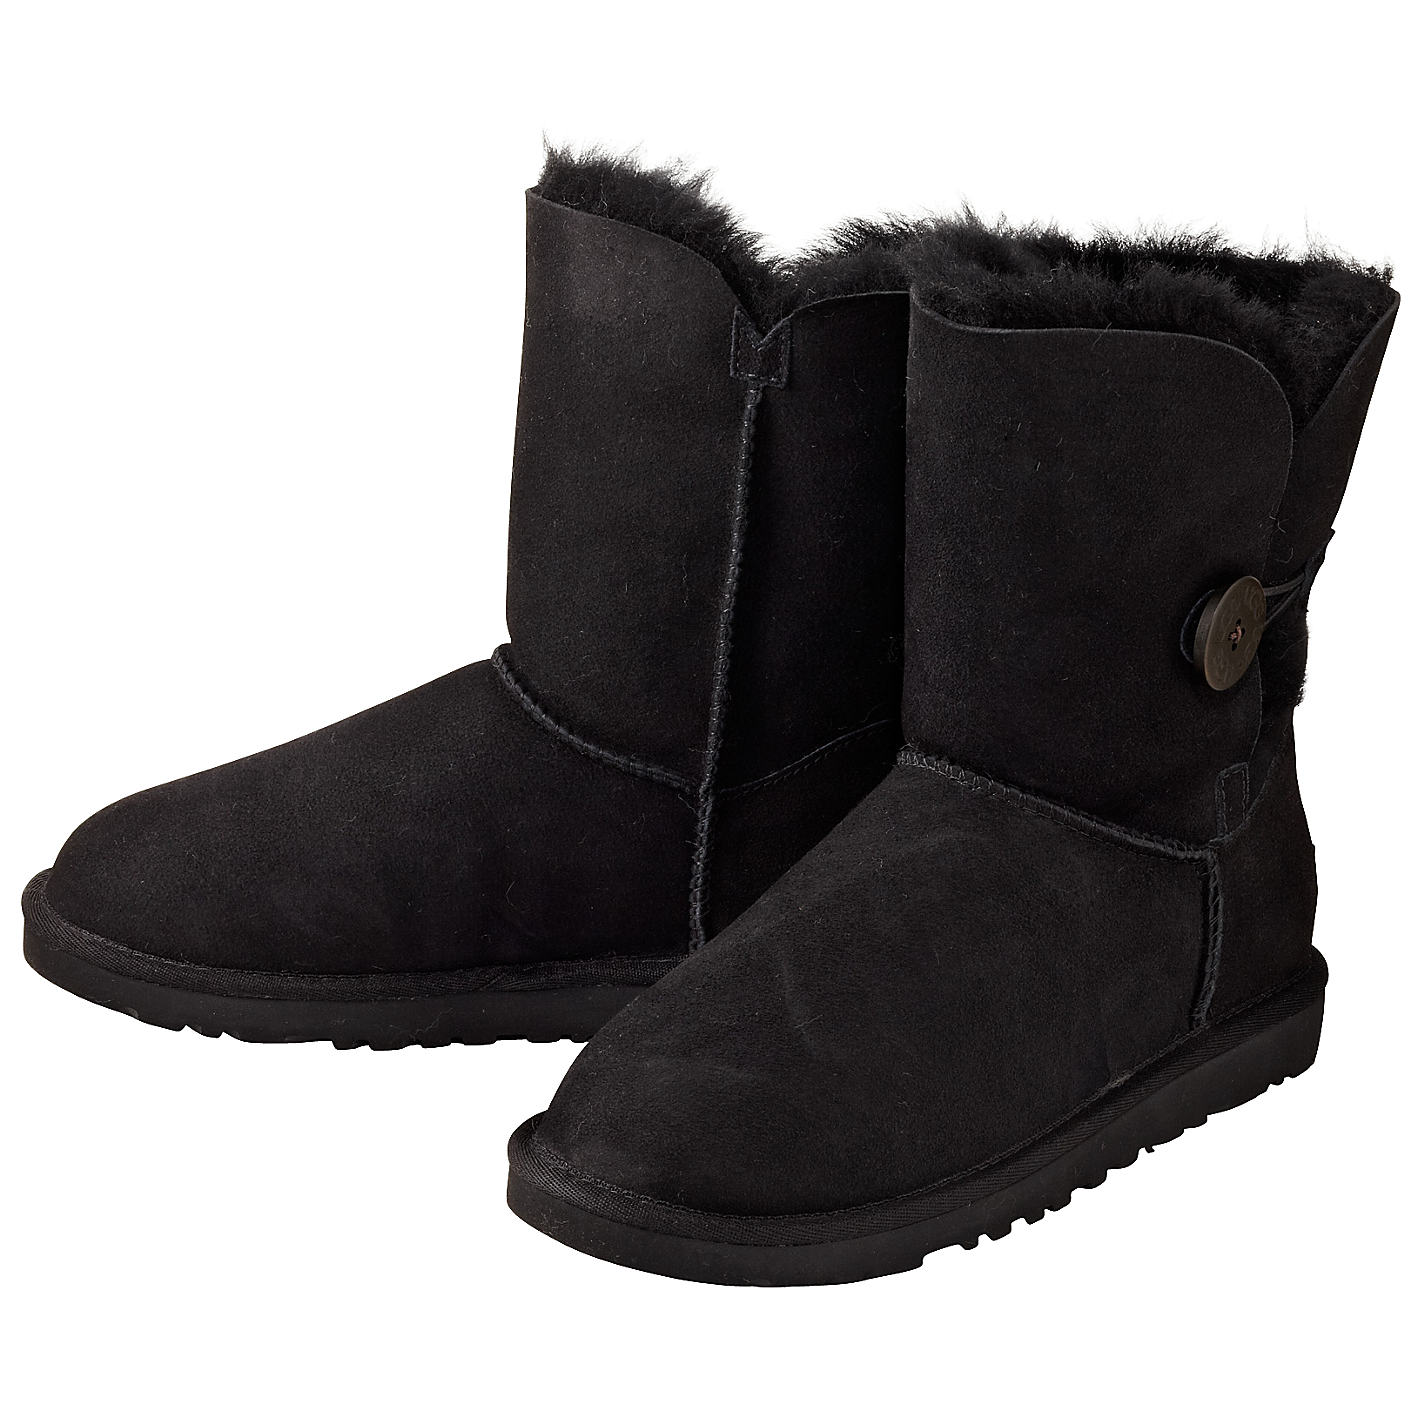 ugg boots for sale cheap ugg shoes online ugg boot on sale. Black Bedroom Furniture Sets. Home Design Ideas